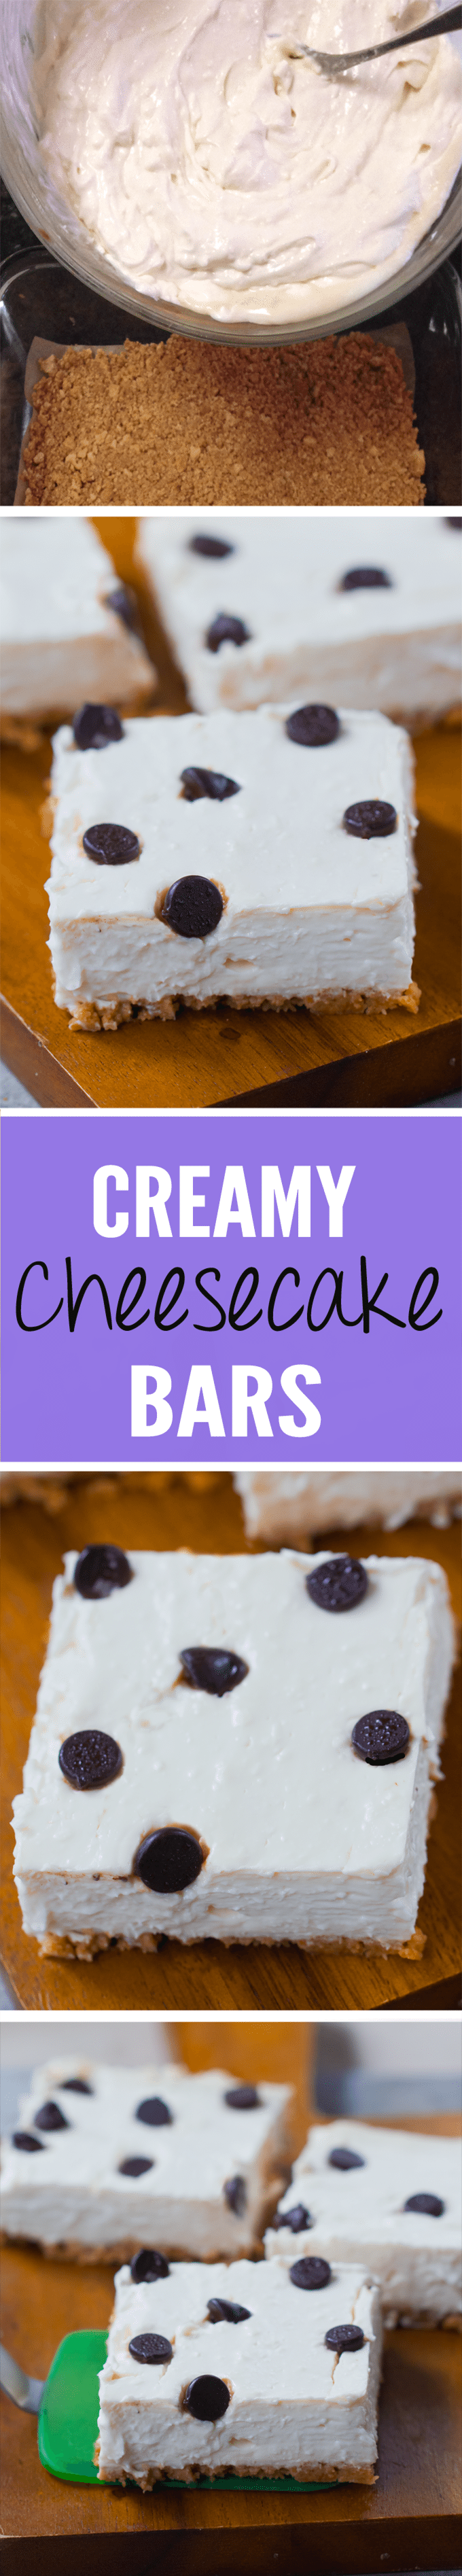 Creamy Chocolate Chip Cheesecake Bars - Ingredients: 12 oz cream cheese, 1 cup yogurt, 2 tsp pure vanilla extract, 1 tbsp lemon juice, 3/4 cup... Full recipe >> https://chocolatecoveredkatie.com @choccoveredkt